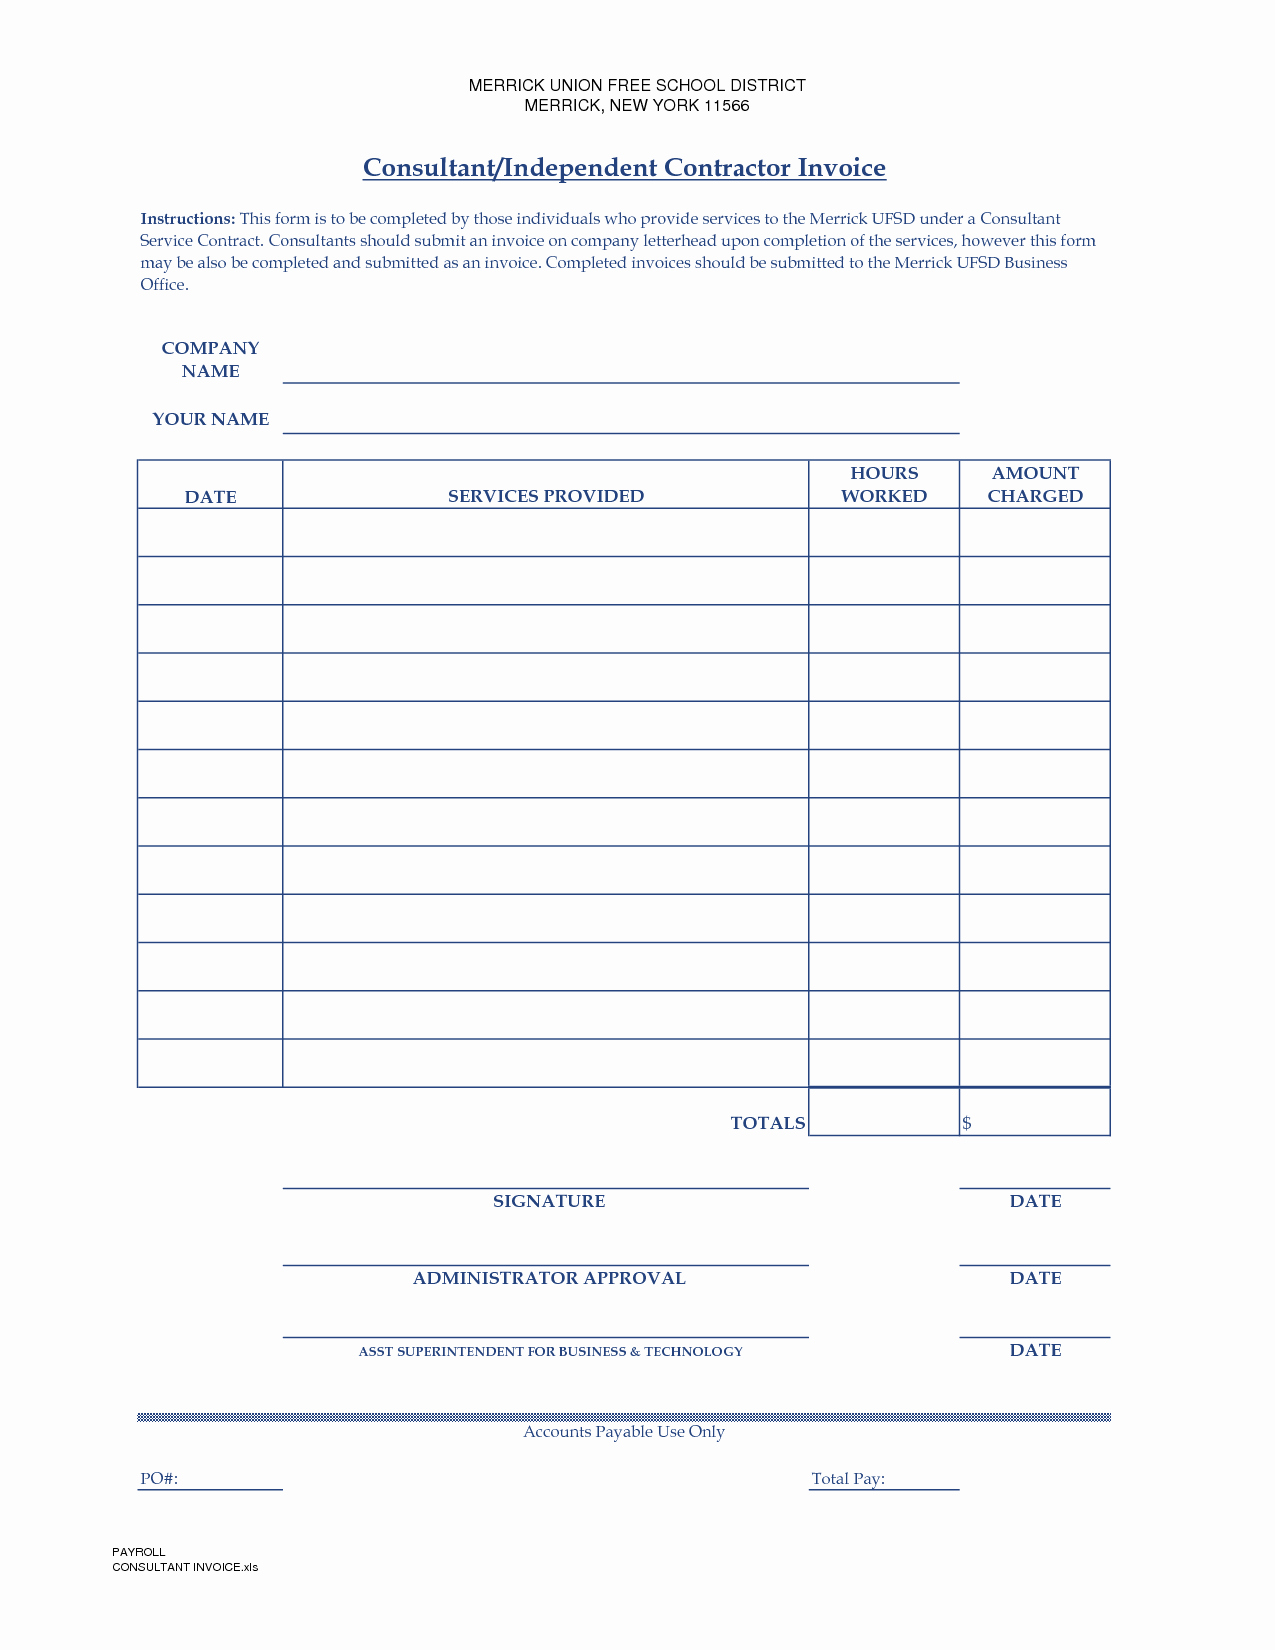 Free Construction Invoice Template Lovely Independent Contractor Invoice Template